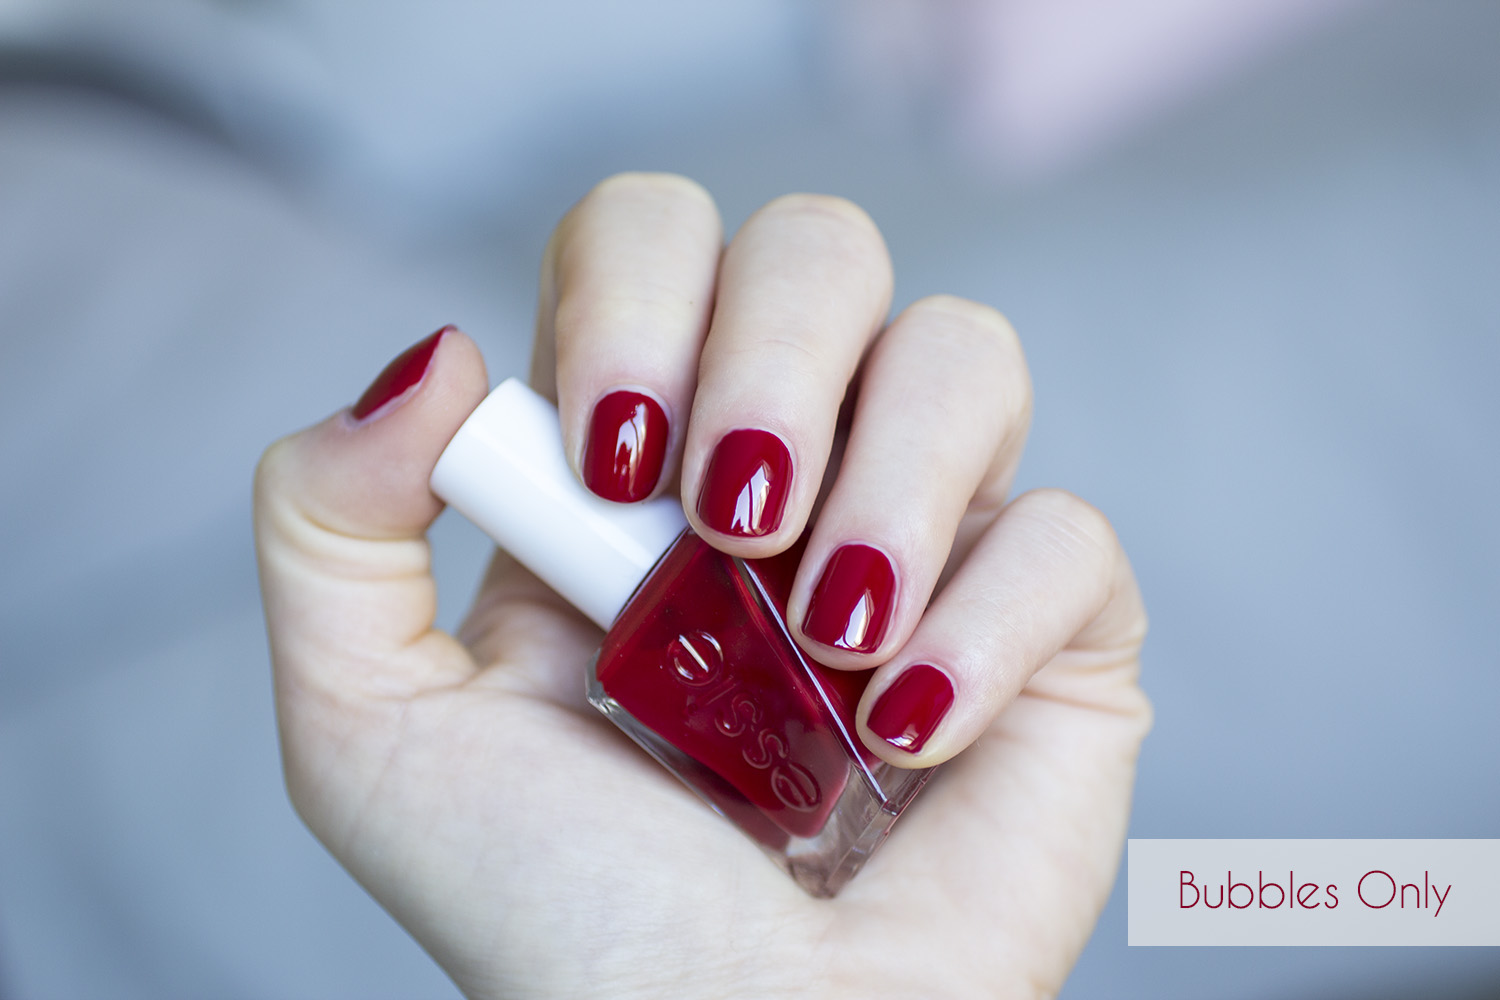 Gel Couture Bubbles Only - Essie